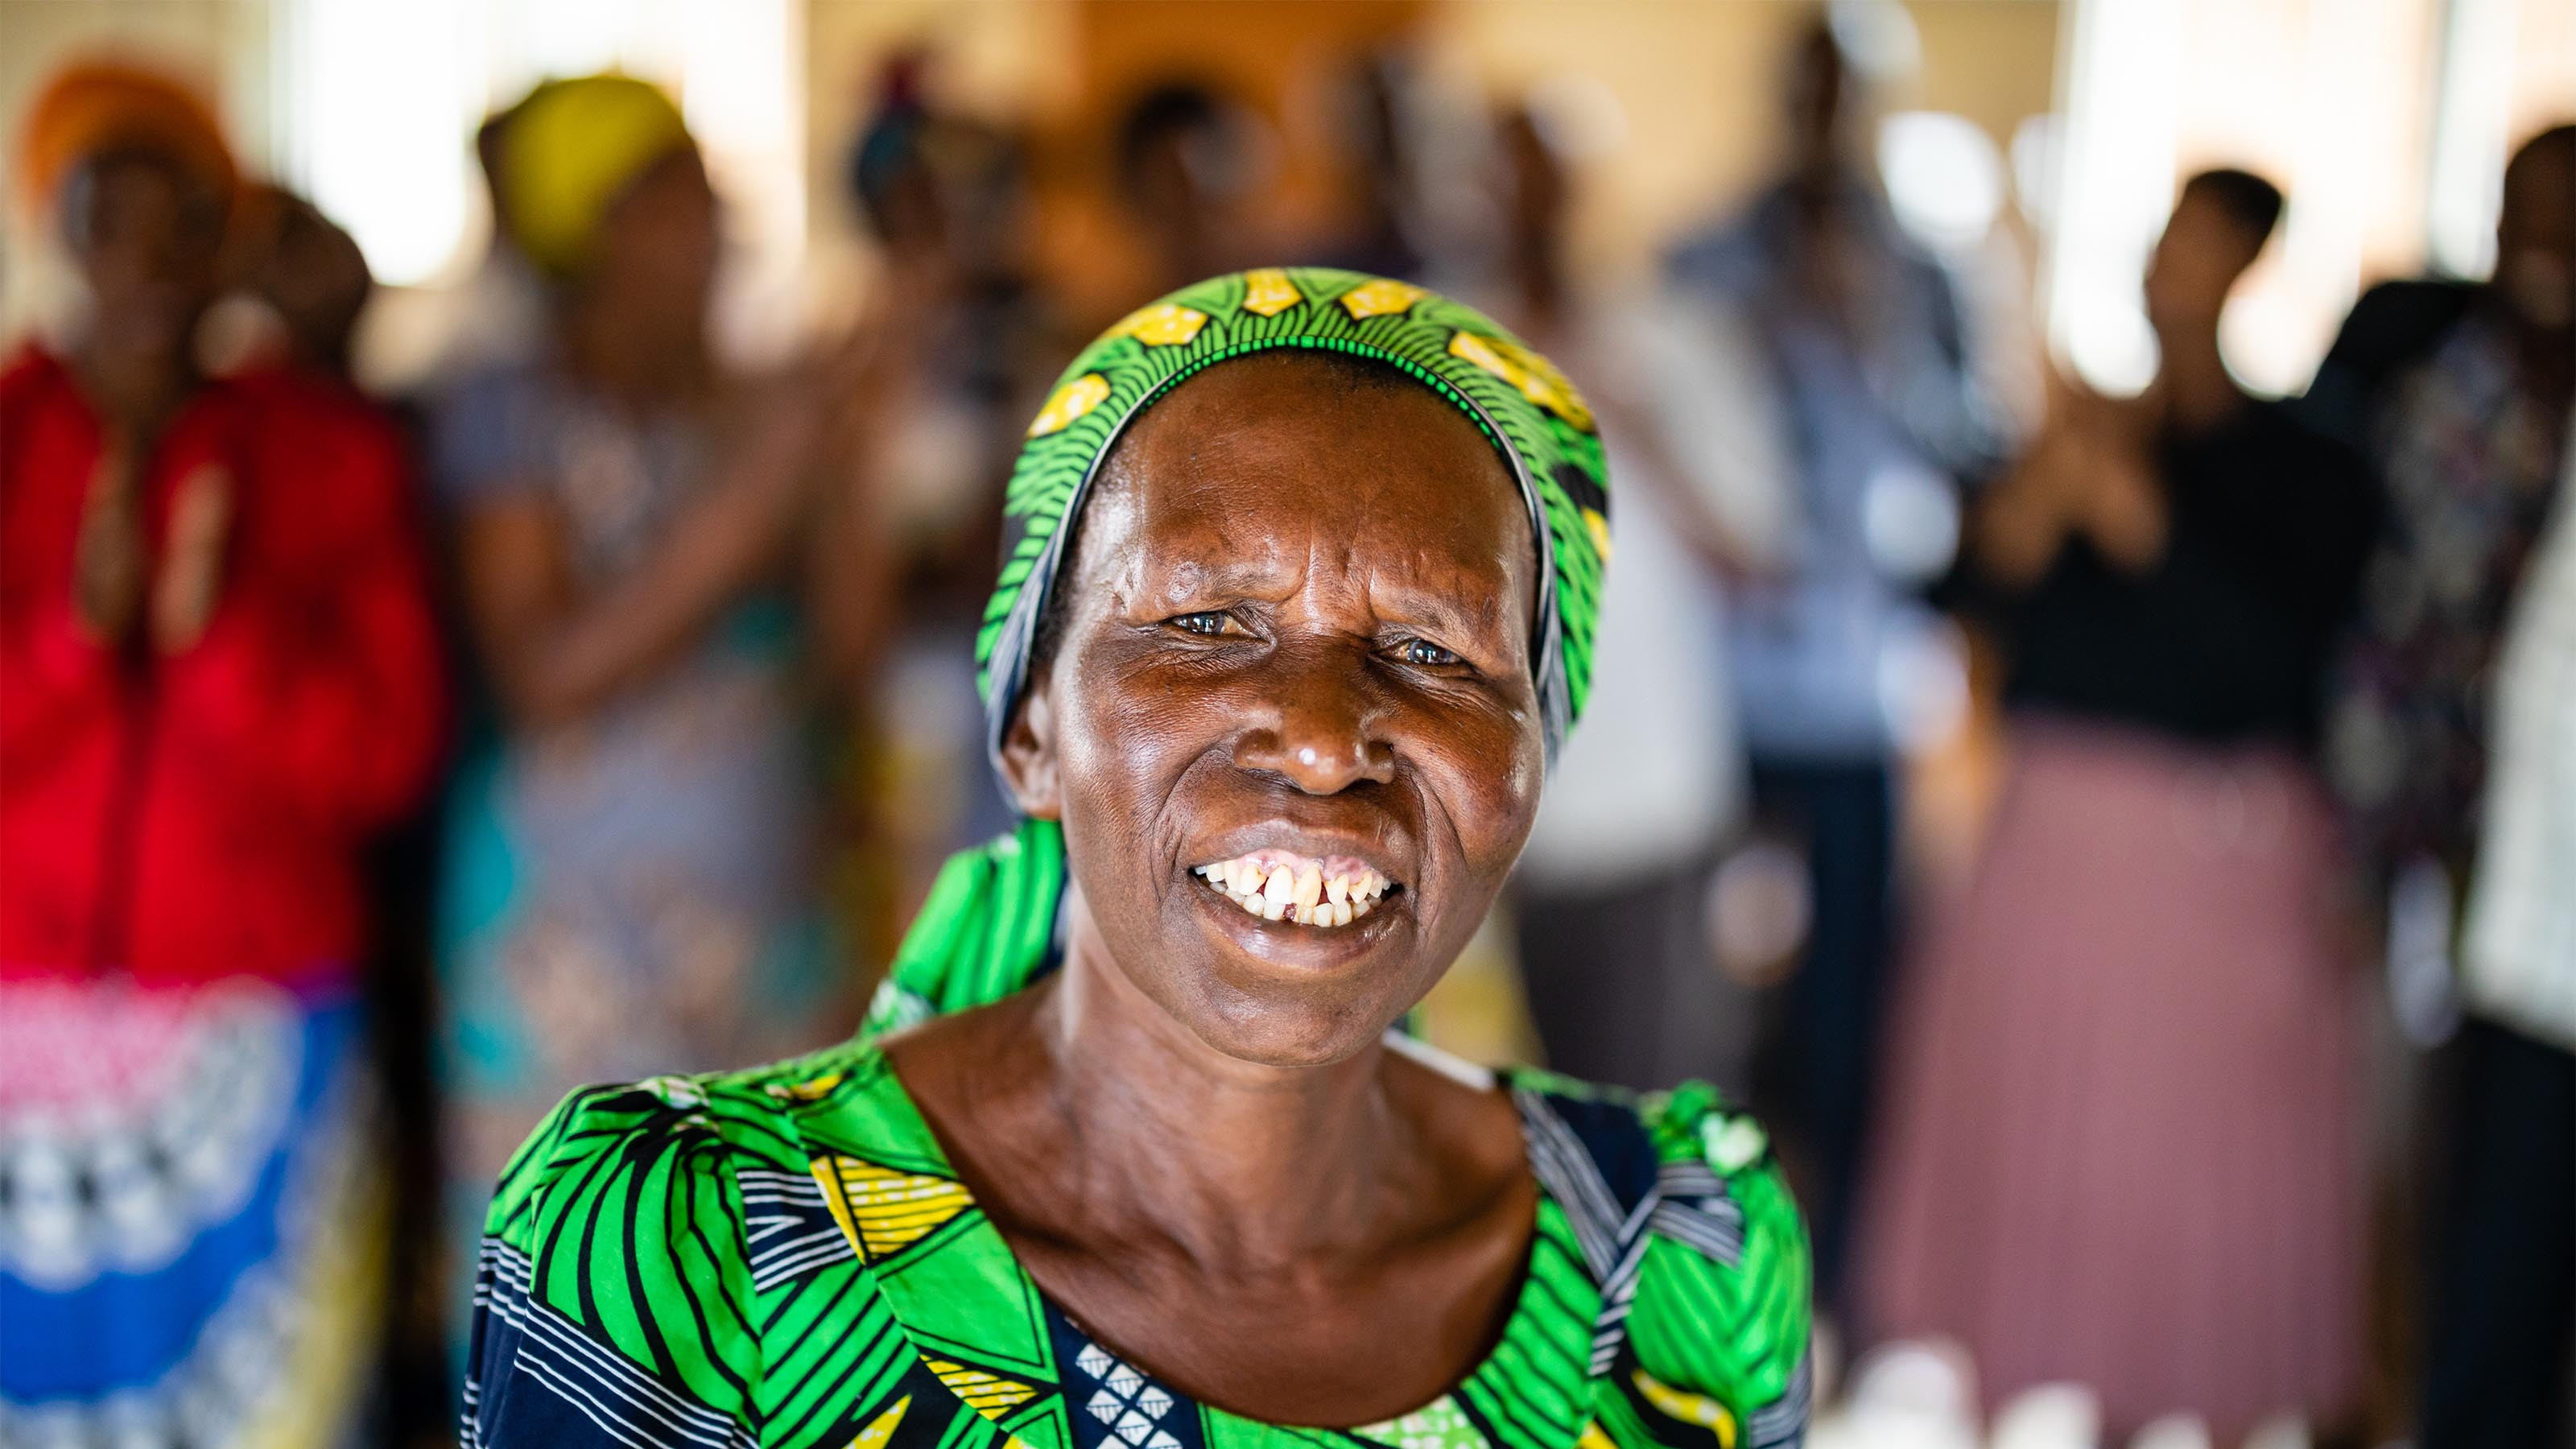 65 year old Valerie is a member of a self help group in Rwanda